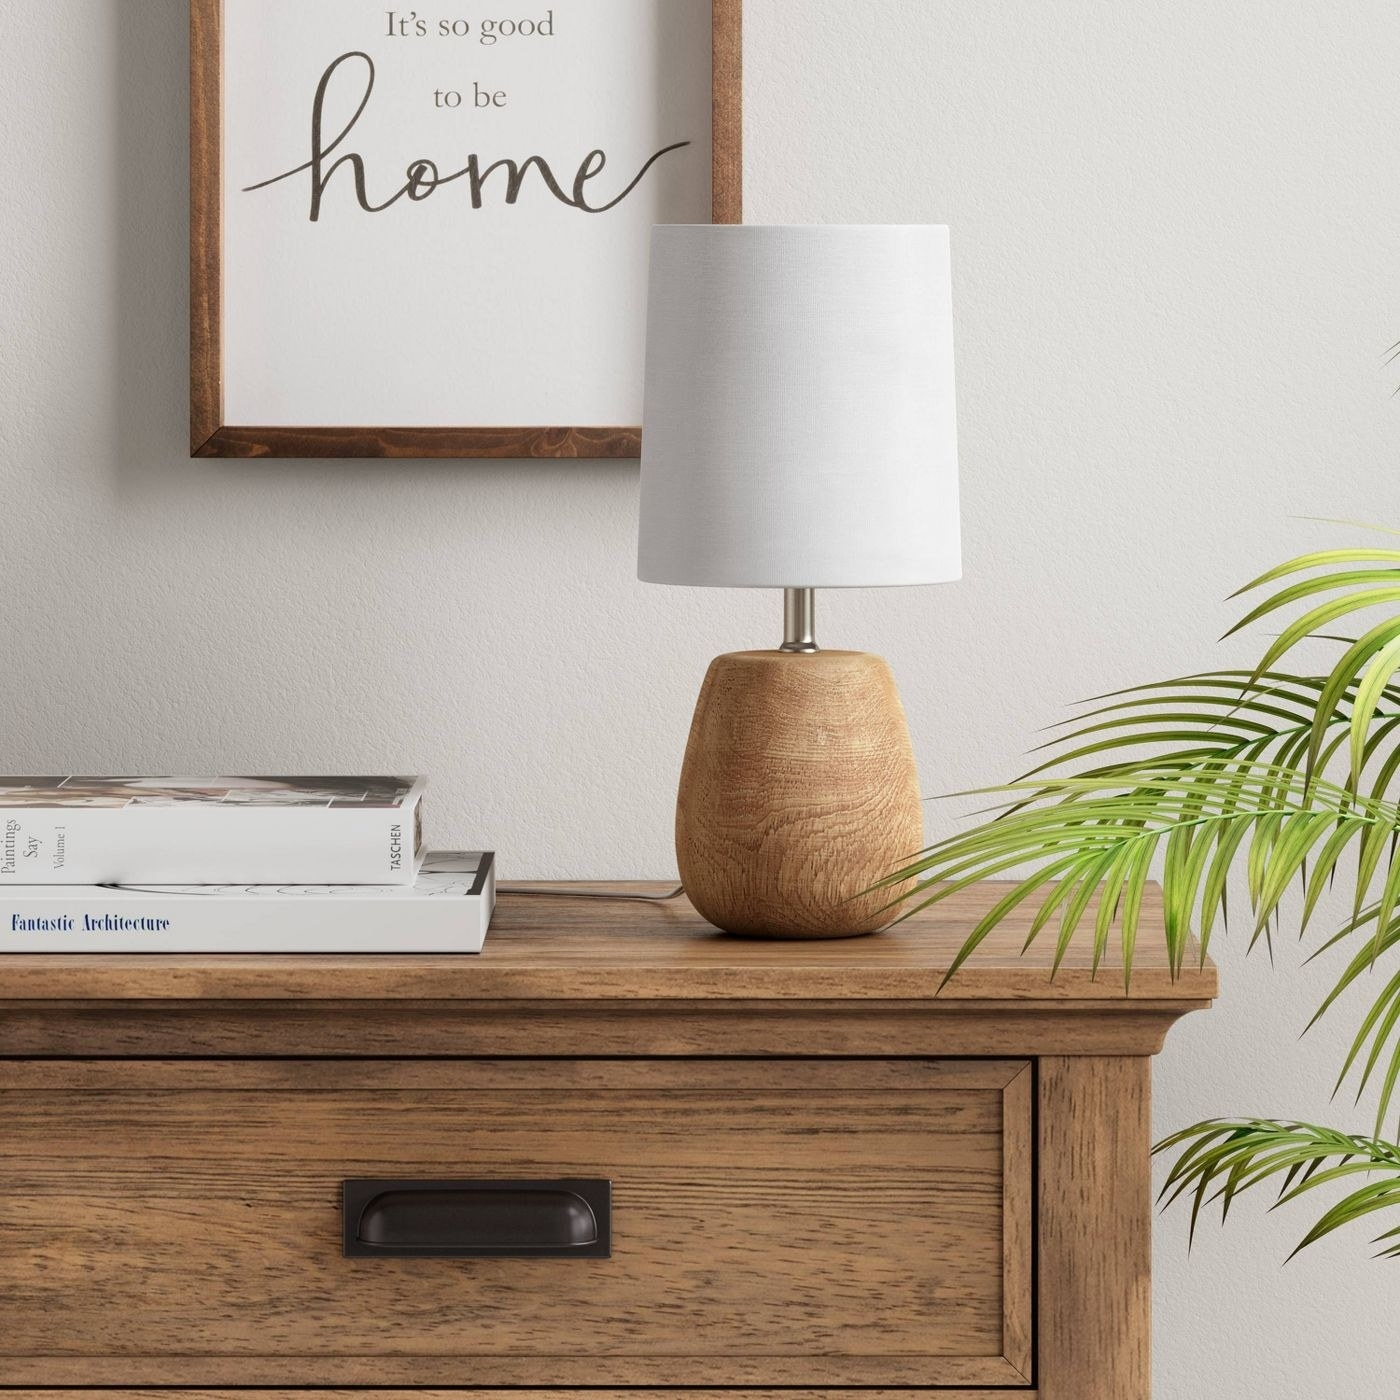 small accent lamp with white lampshade and wood colored base